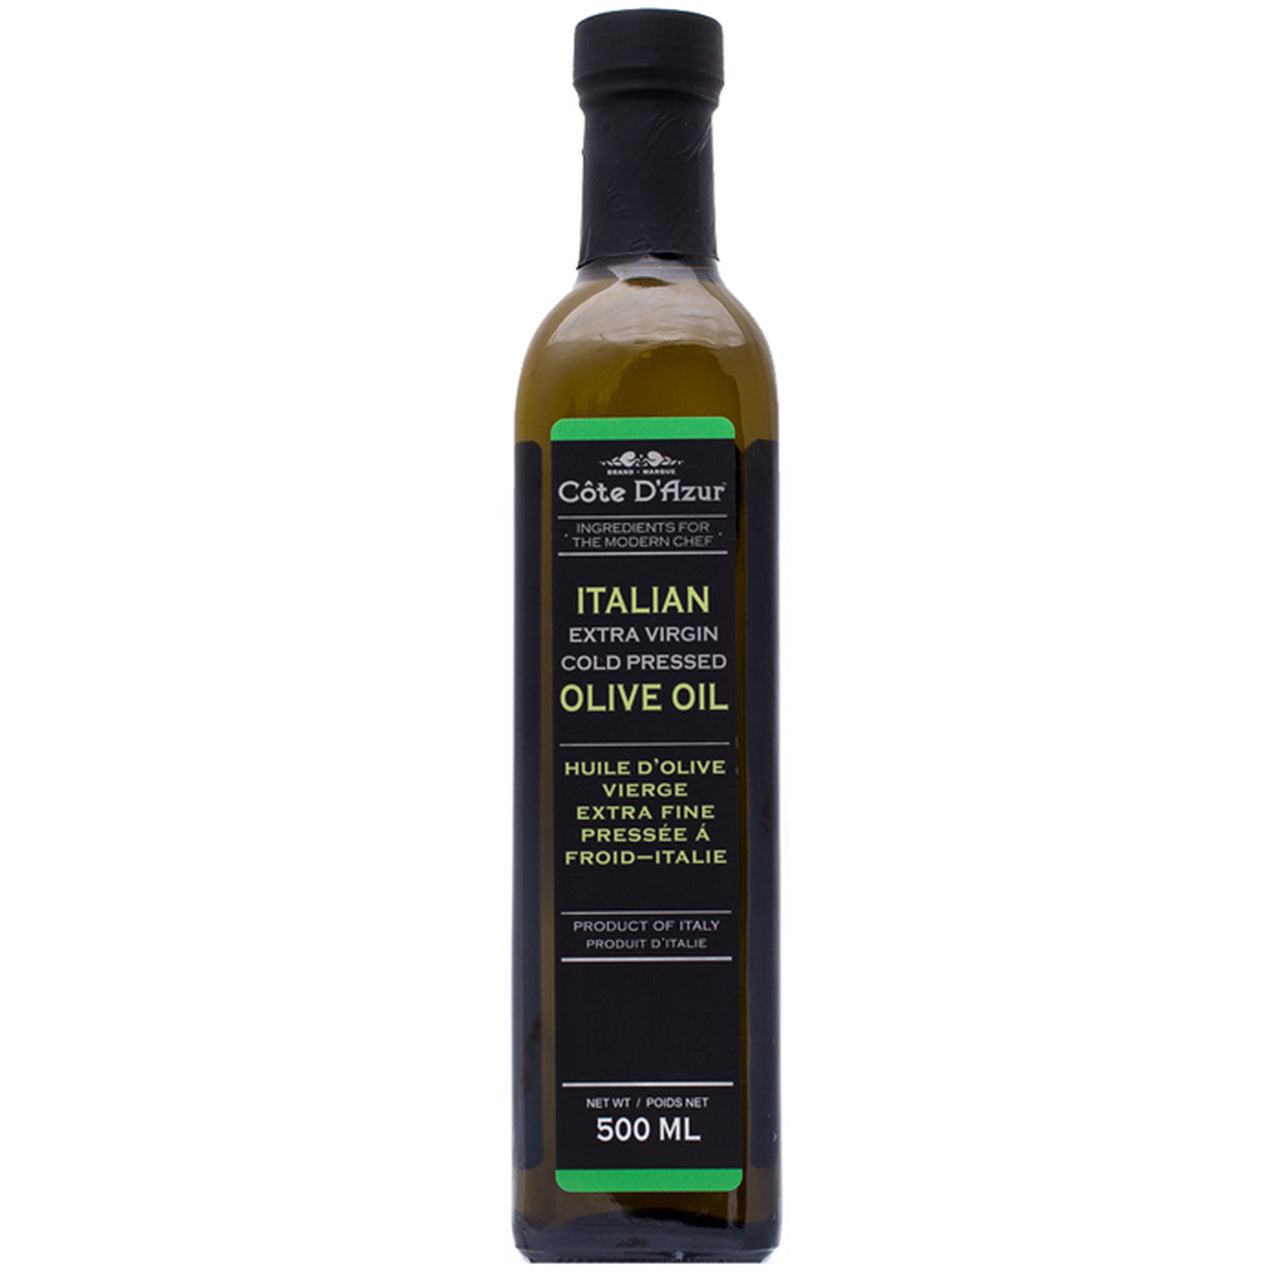 Cote D'Azur Italian Extra Virgin Olive Oil